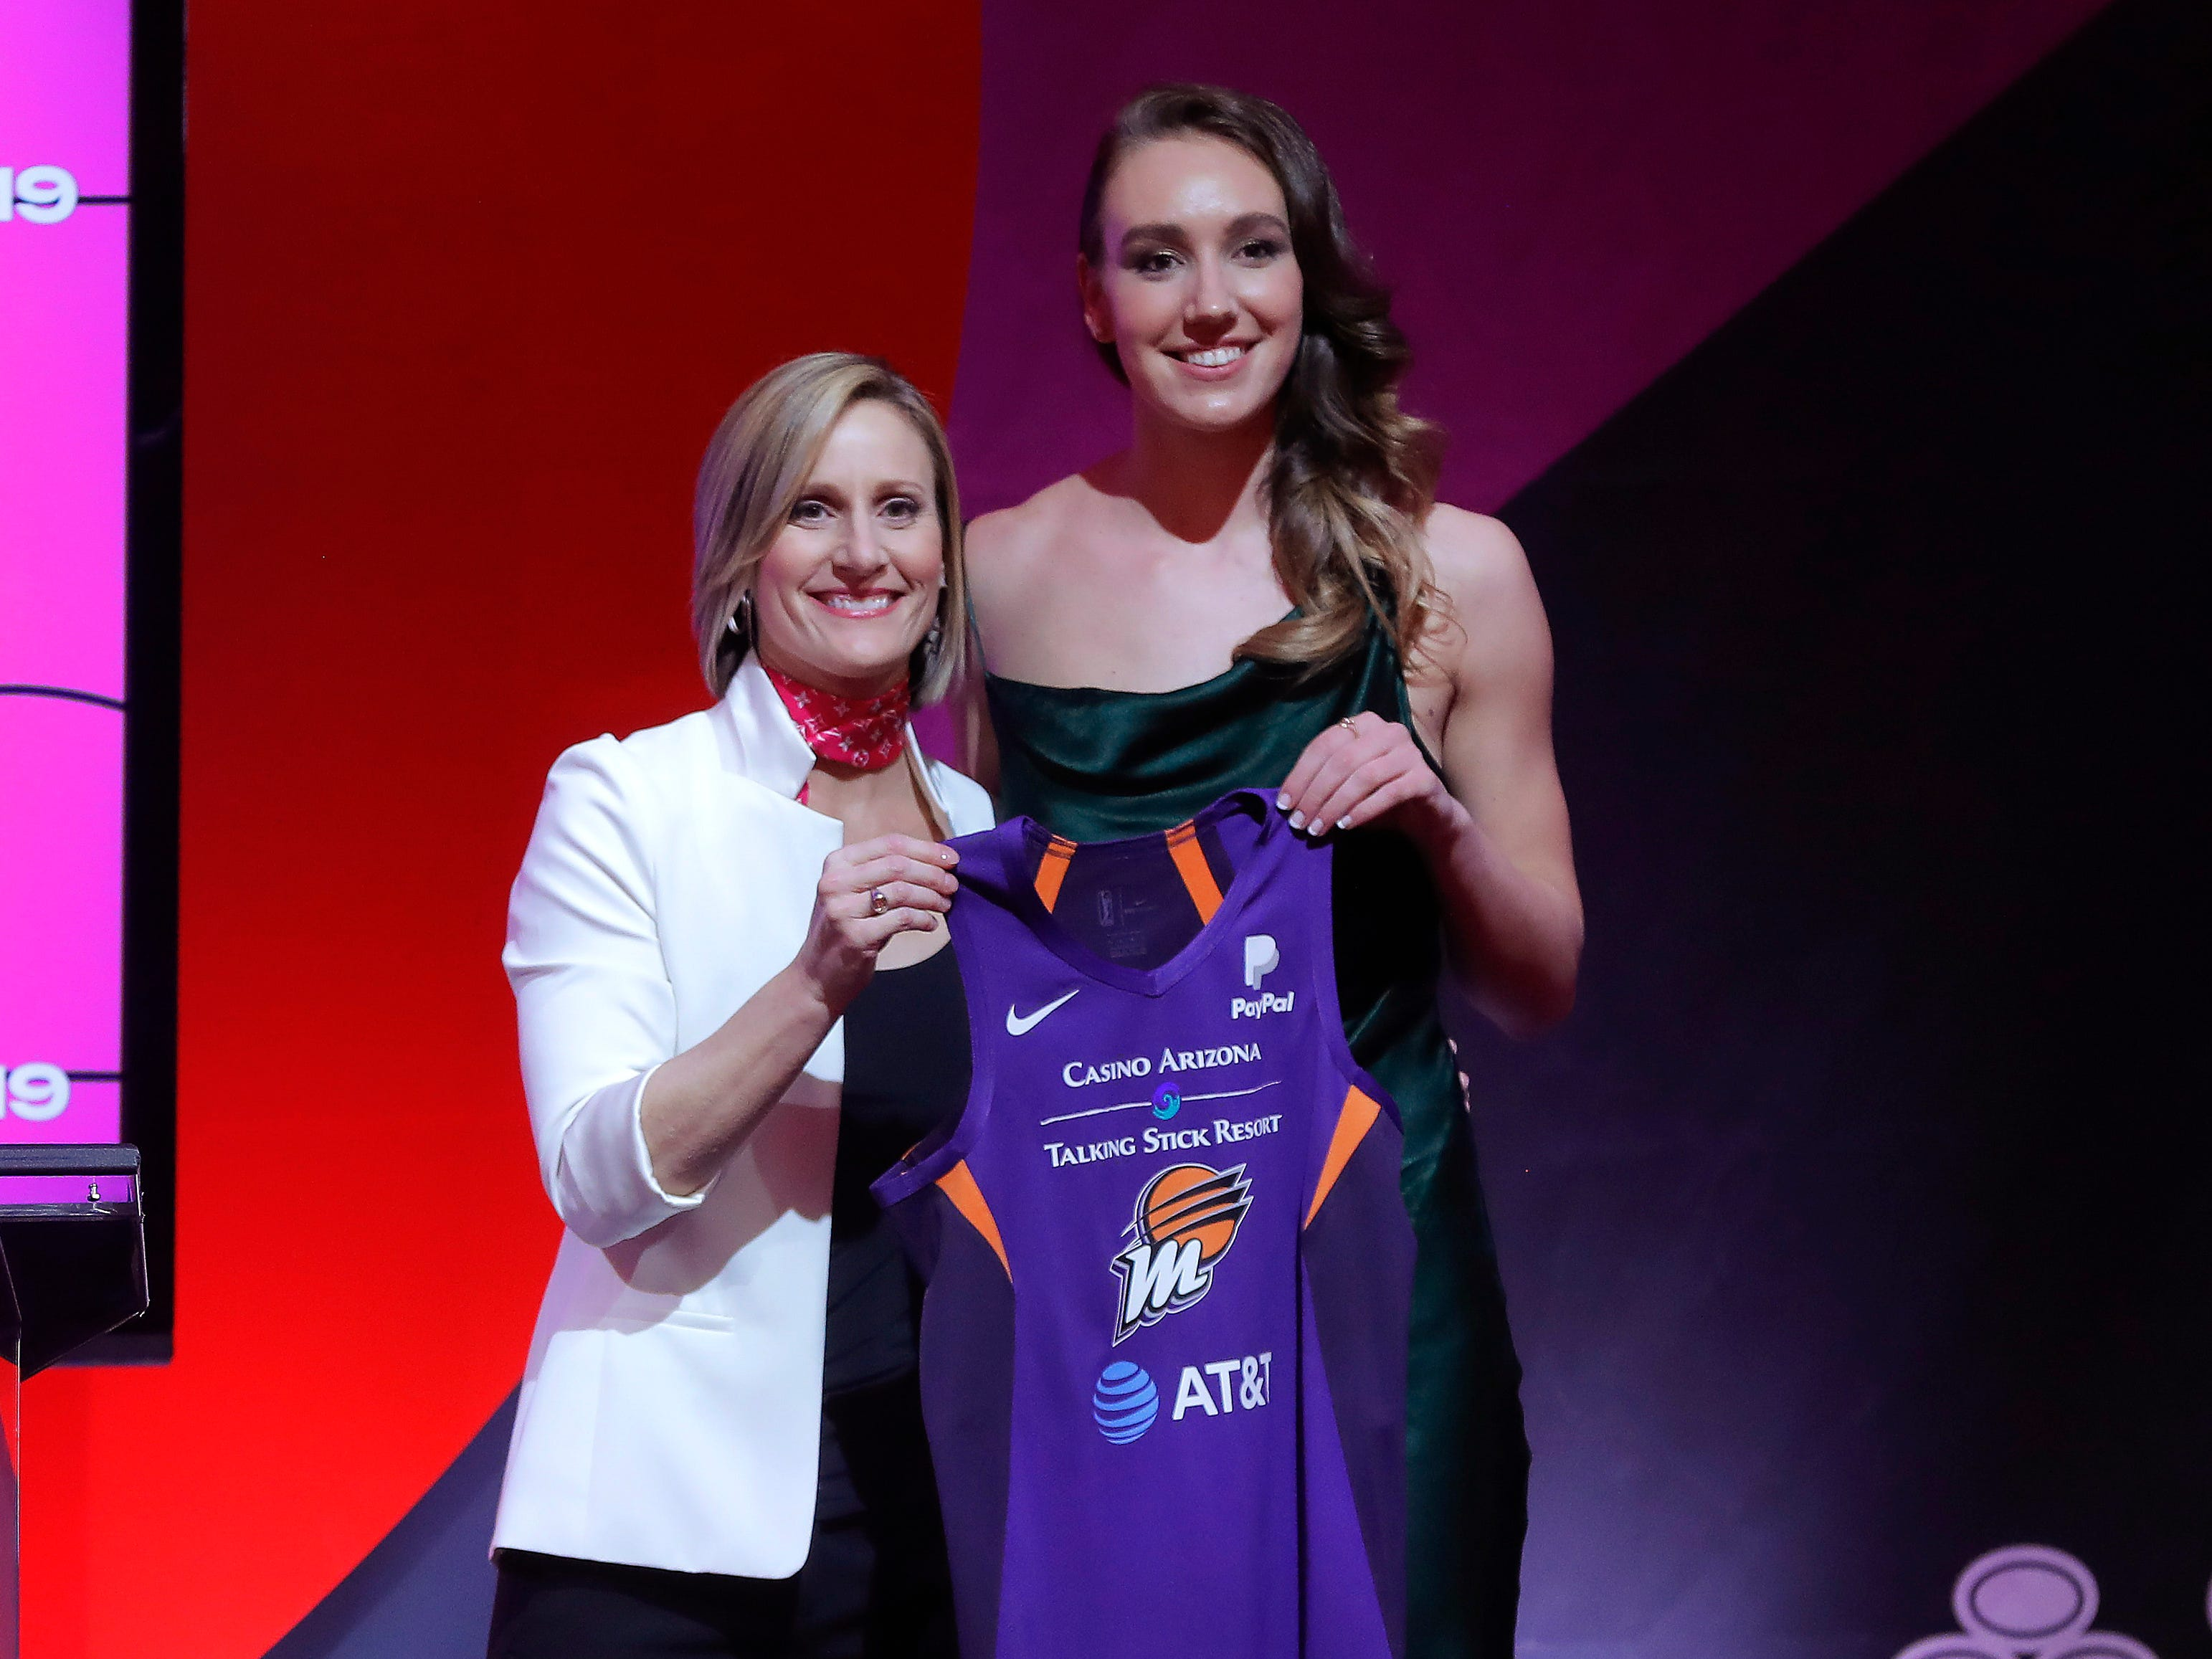 Stanford's Alanna Smithposes for a photo with WNBA COO Christy Hedgpeth after being selected by the Phoenix Mercury as the eighth overall pick in the the WNBA draft.